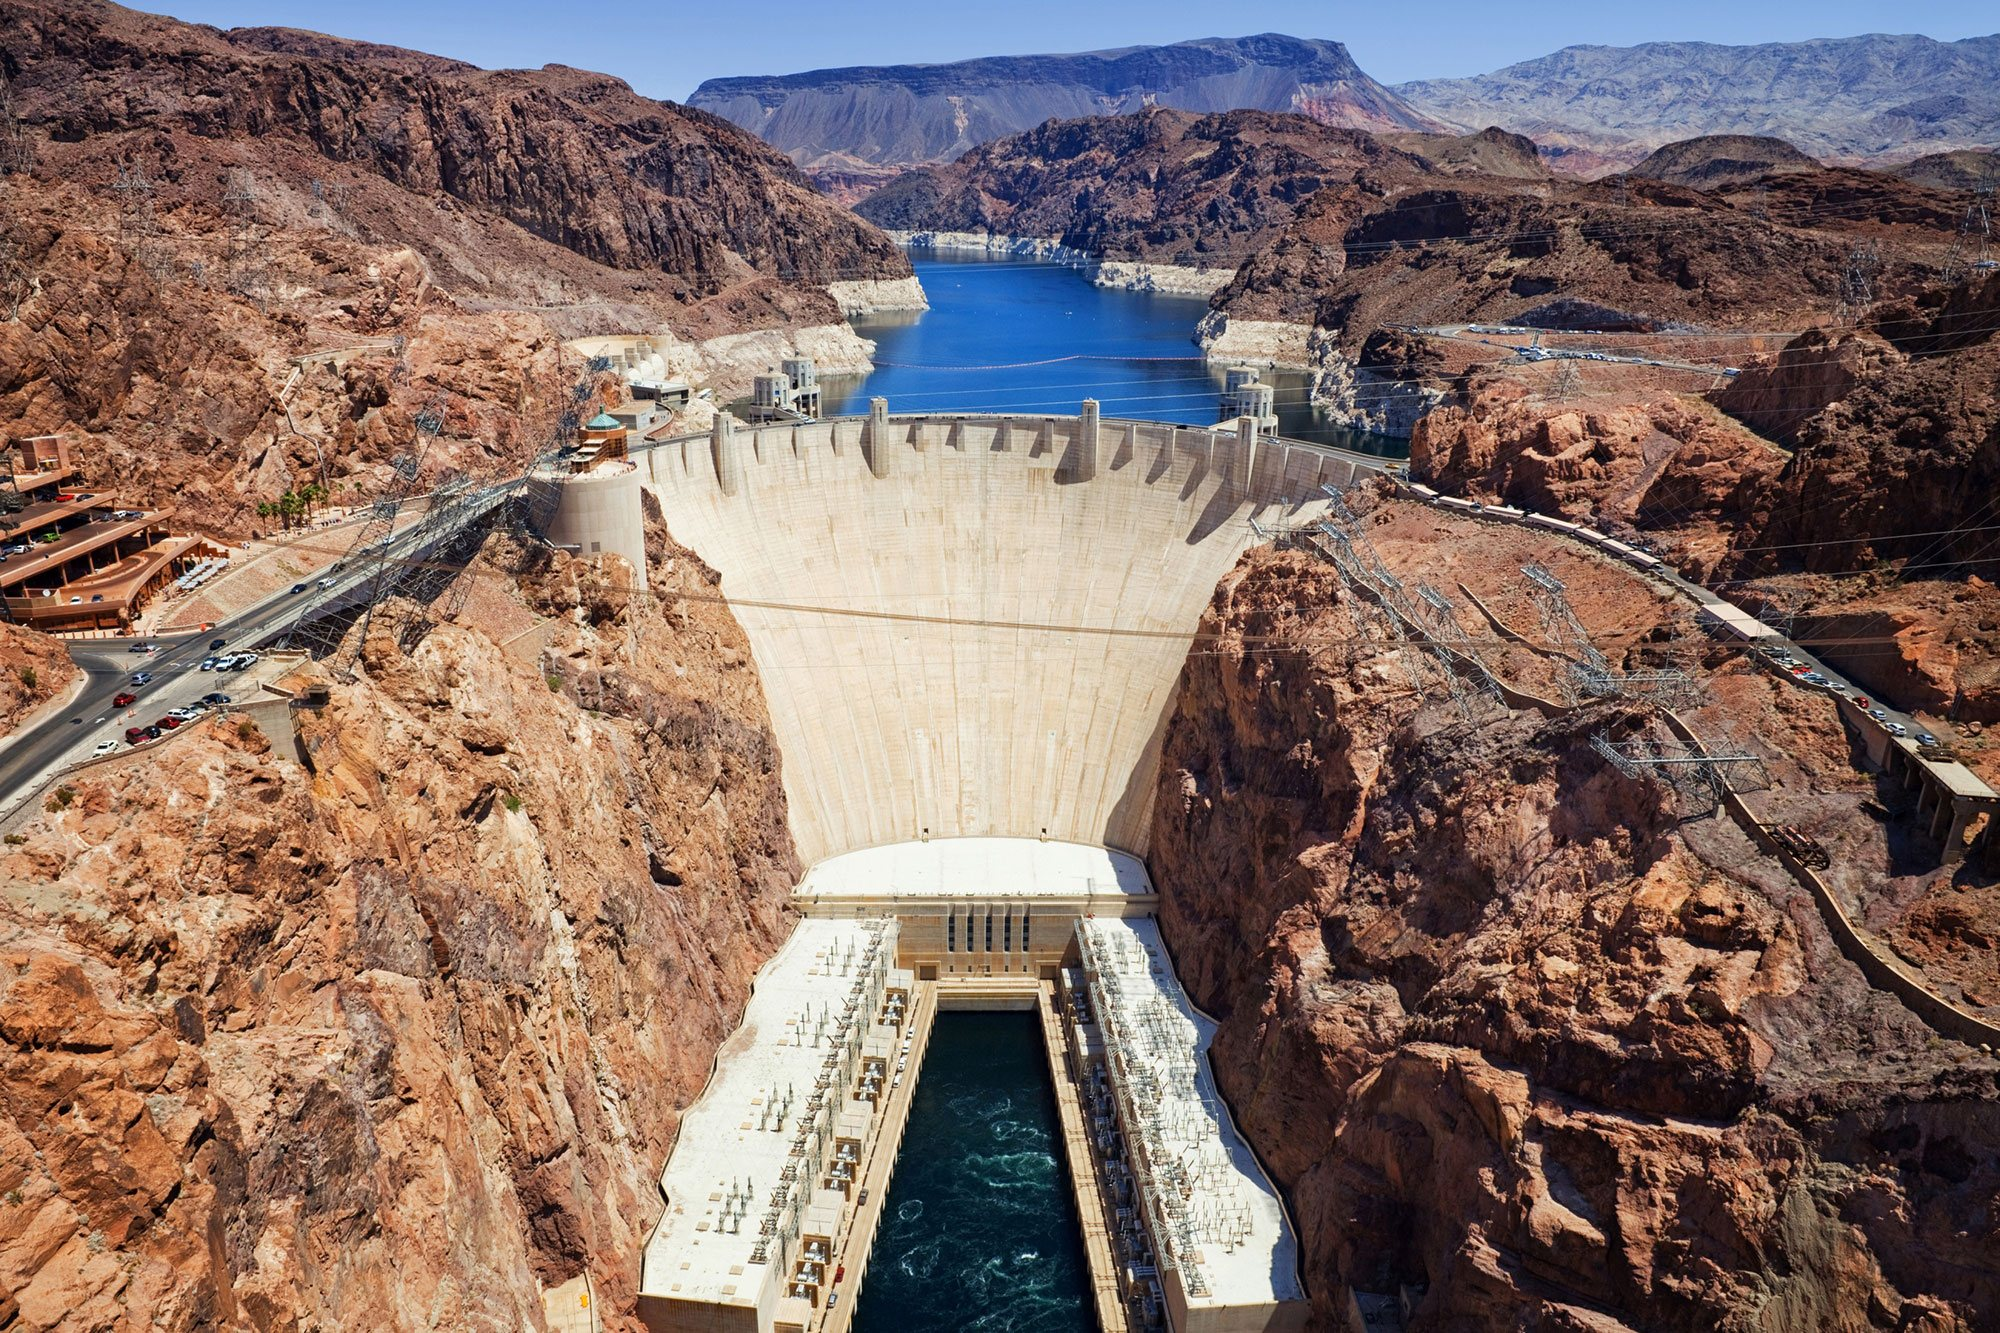 hoover dam histoy essays Asa webb found the answer to a search query hoover dam history essays hoover dam argumentative research paper apache is functioning normally.